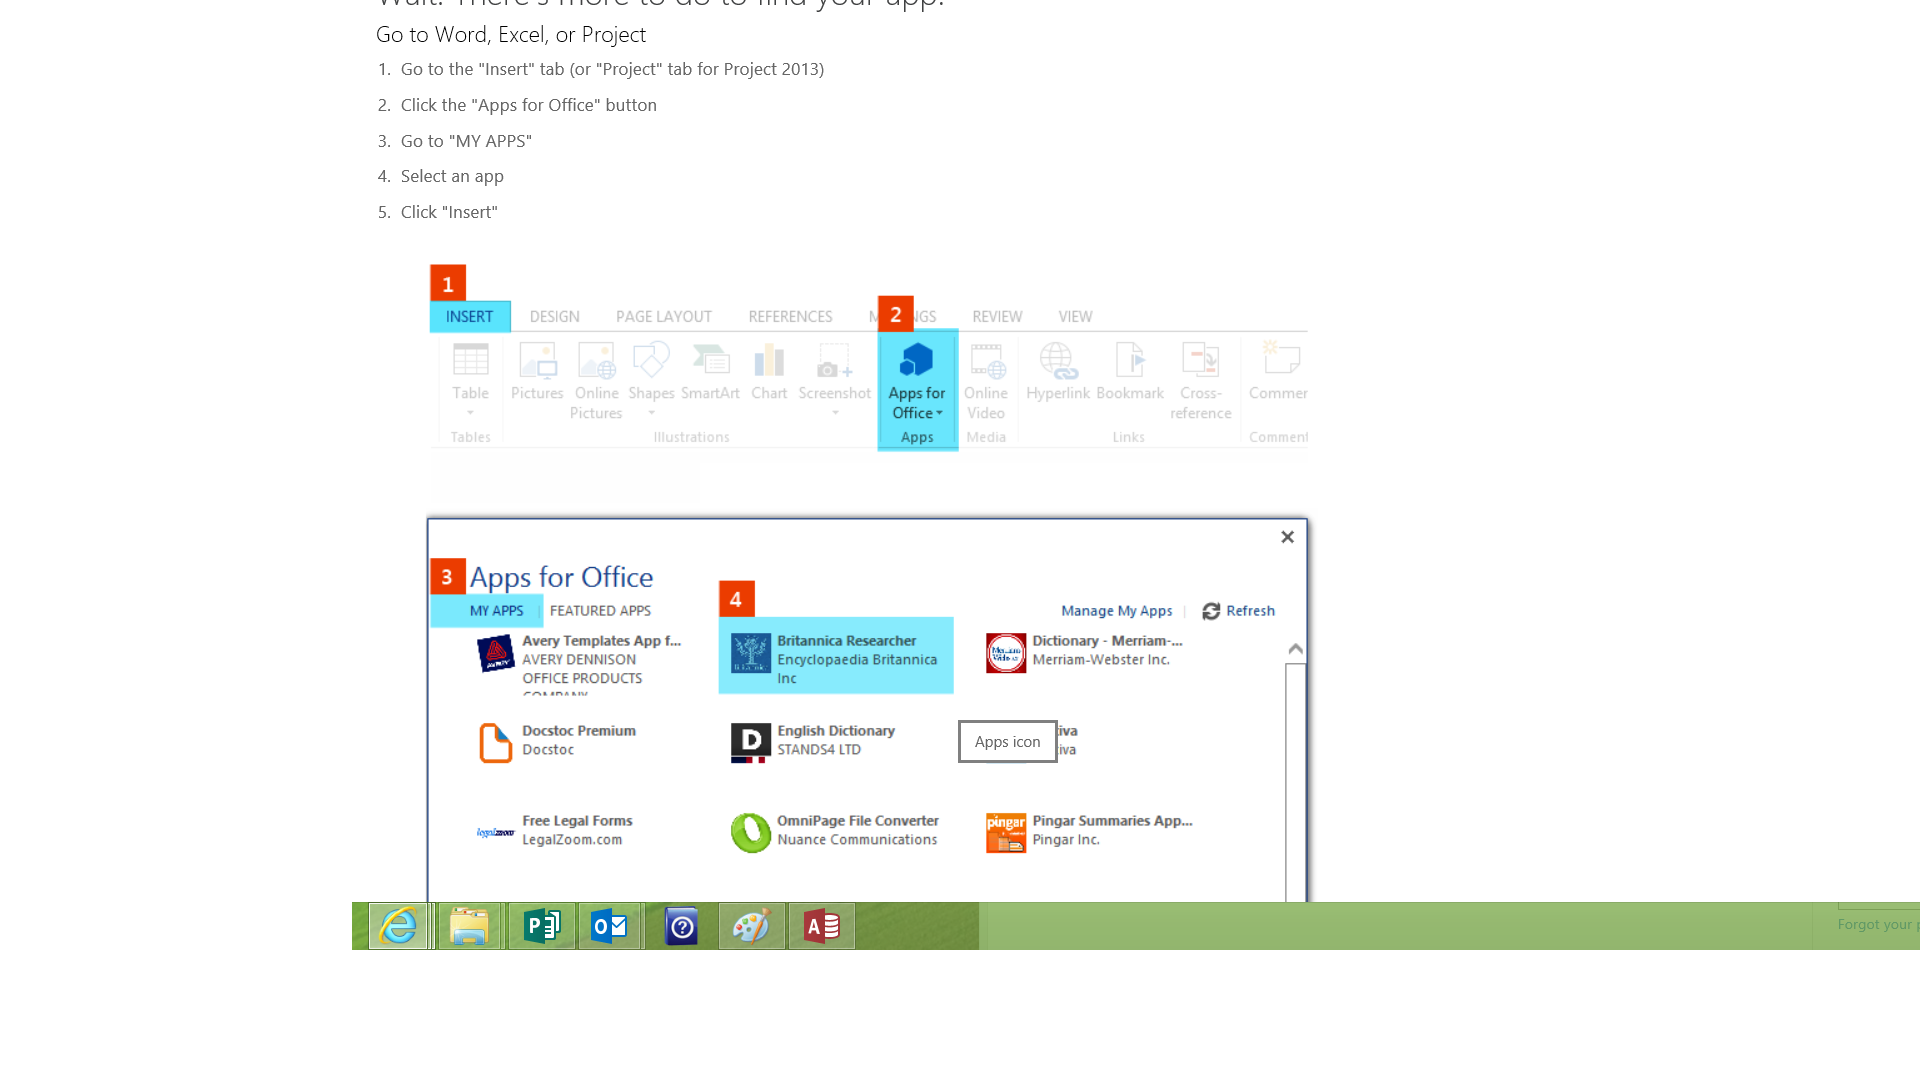 The Office App Store is also available through the Office.com website; click to see more applications within an Office 2013 application and it launches a browser view of the store.